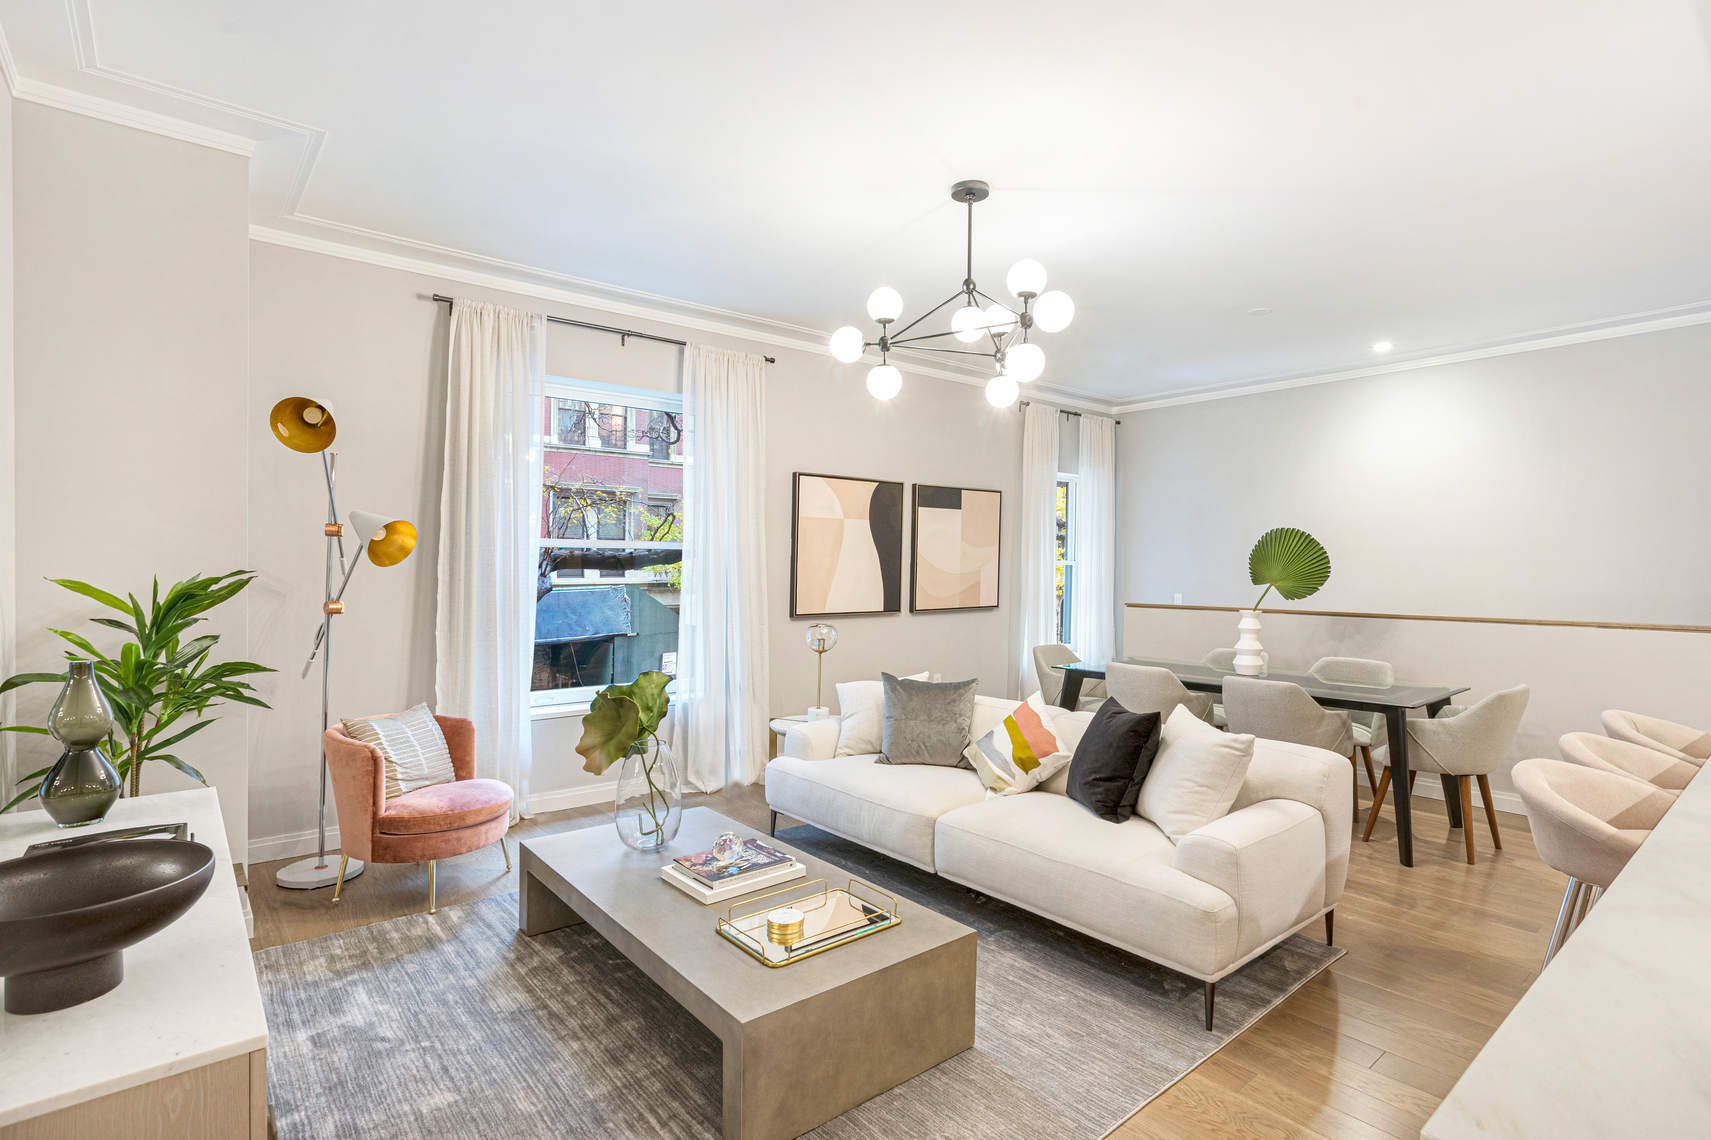 Apartment for sale at 350 West 71st Street, Apt 2-B